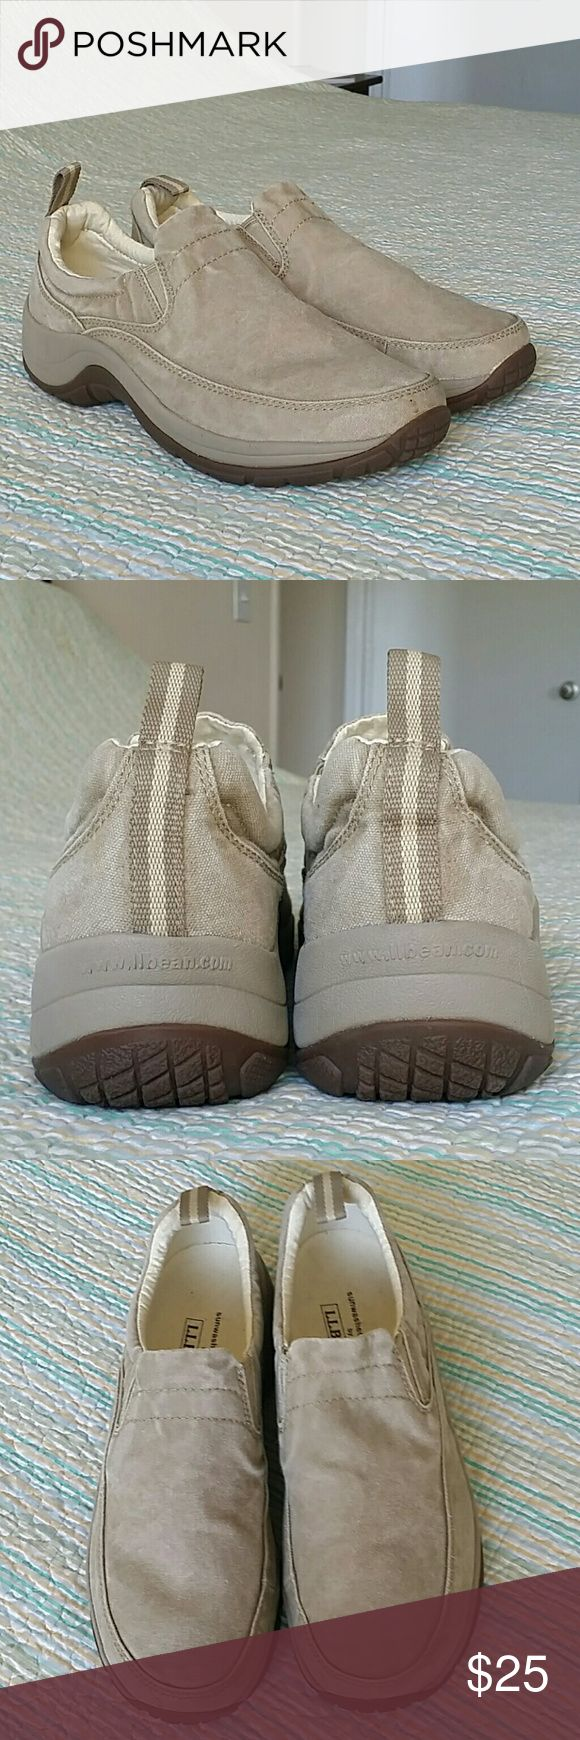 LL Bean Sunwashed Beige Slip On Walking Loafer 10 LL Bean Sunwashed Beige Slip On Walking Athletic Trail Loafers Shoes Wms Sz 10 L.L. Bean Shoes Flats & Loafers